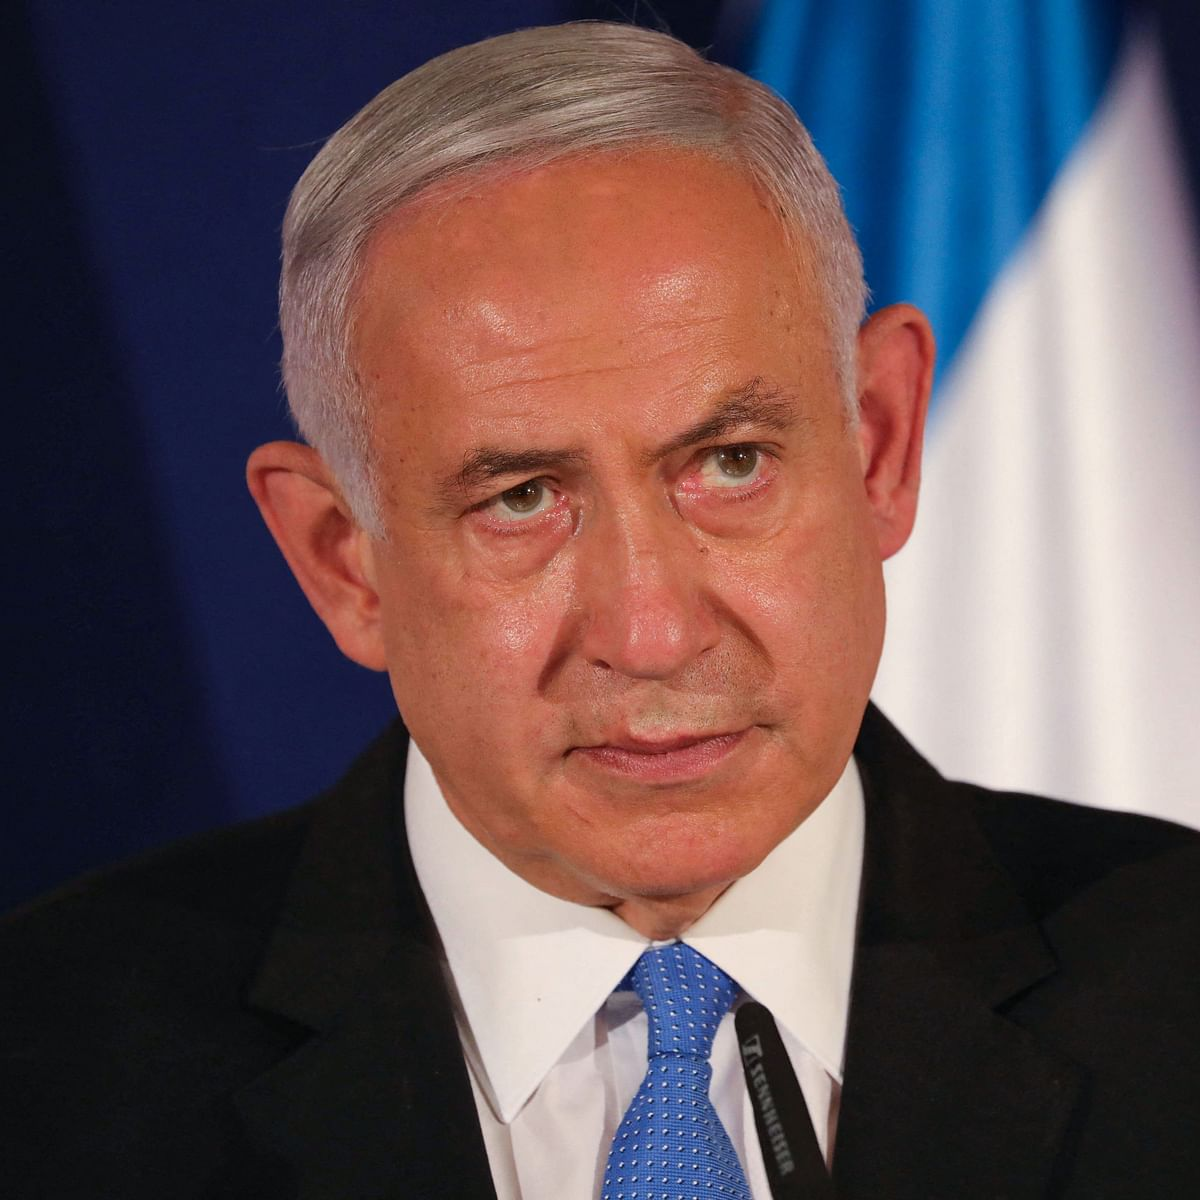 End of Benjamin Netanyahu's reign? With Naftali Bennett set to take over as Israel PM, here's all you need to know